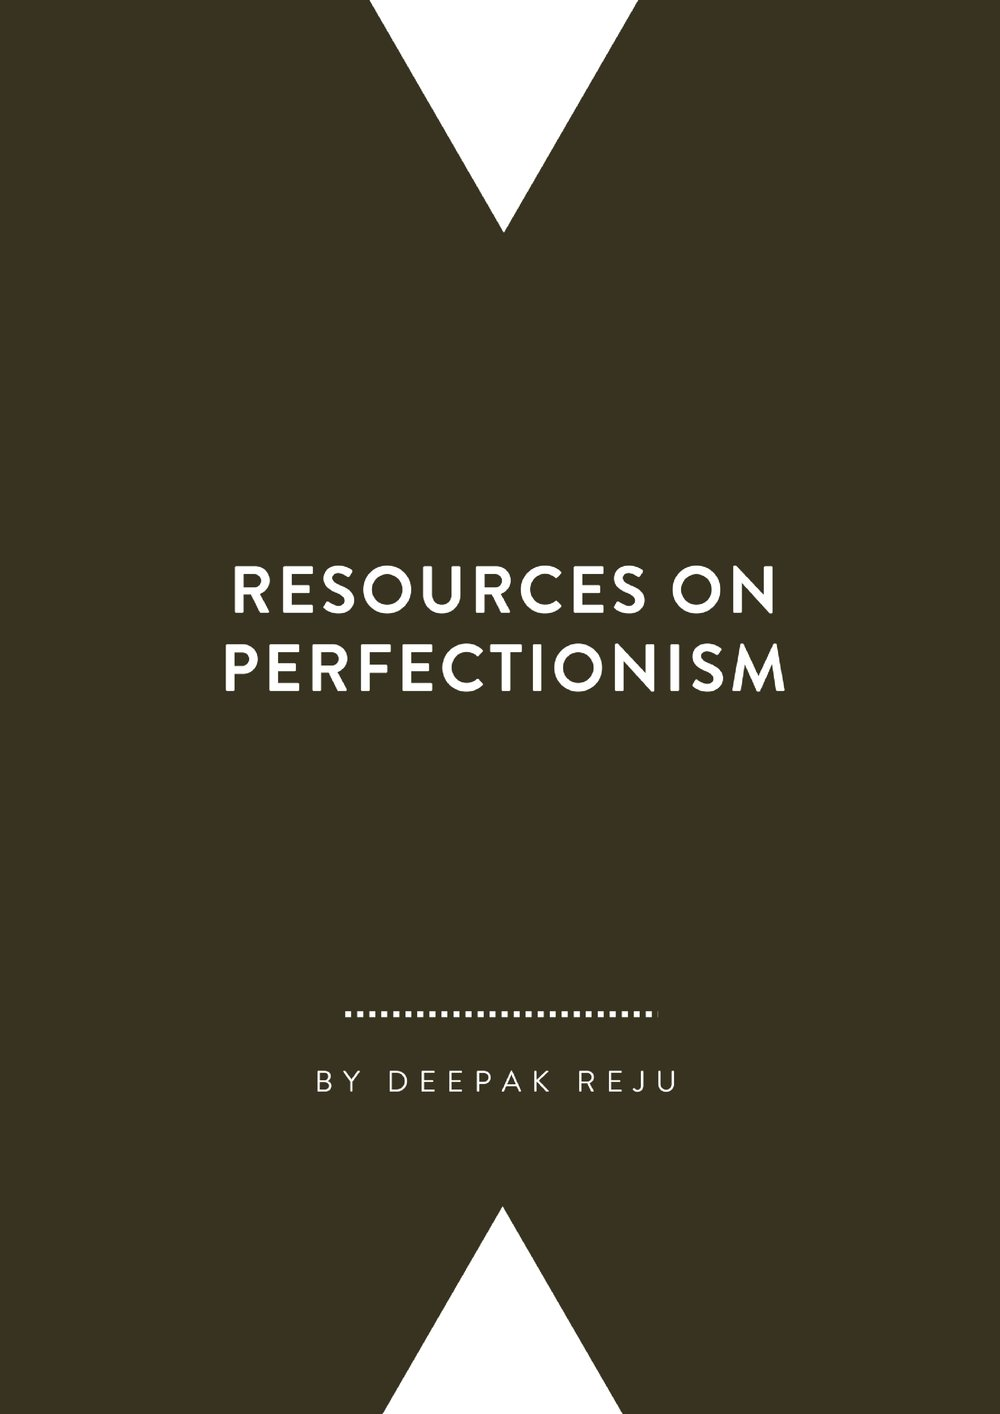 Resources on Perfectionism   By Deepak Reju